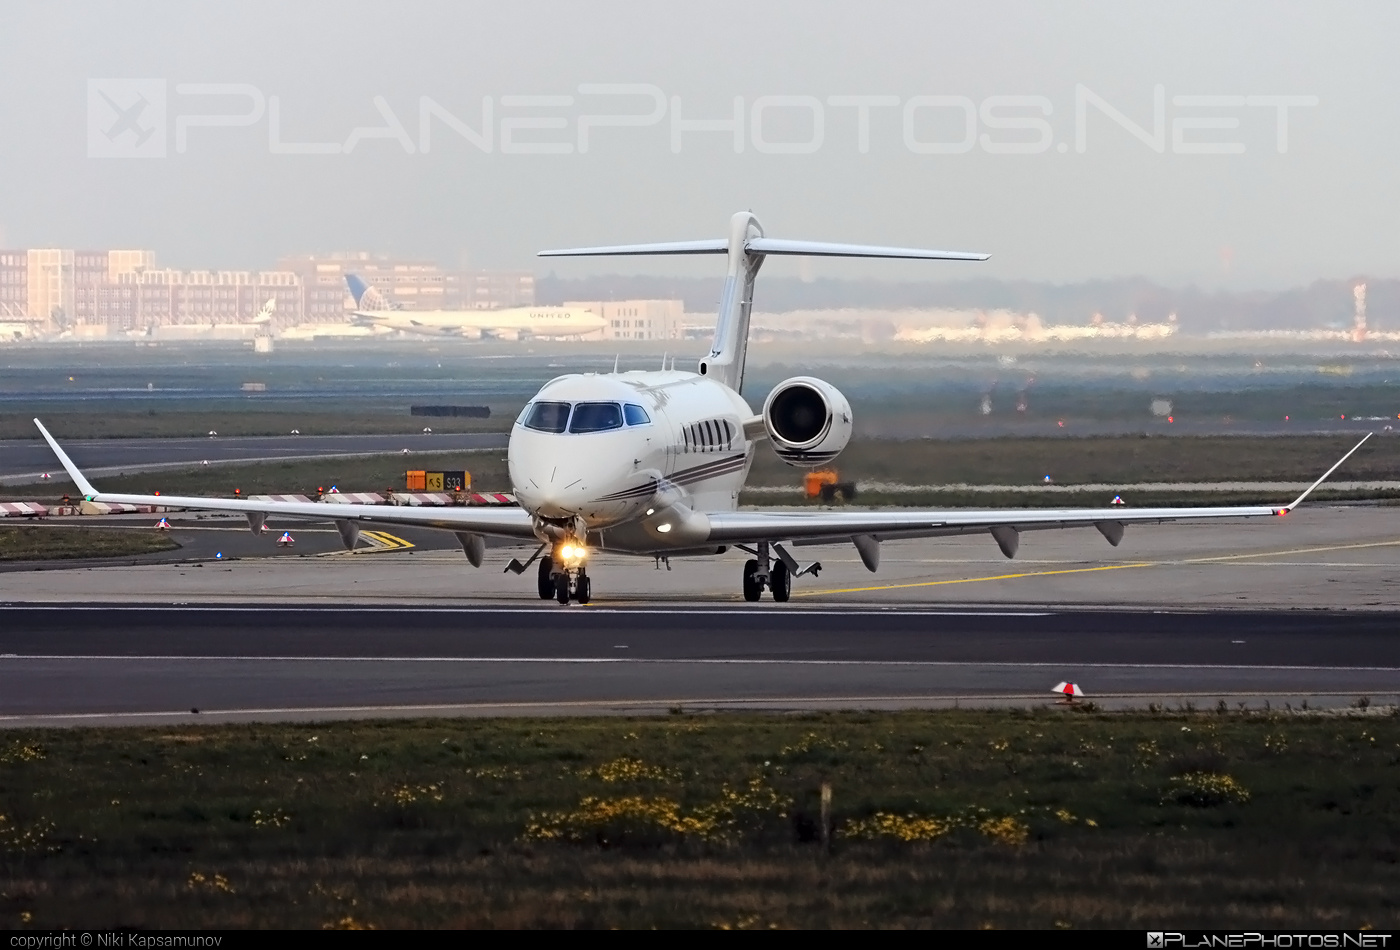 Bombardier Challenger 350 (BD-100-1A10) - CS-CHC operated by NetJets Europe #bd1001a10 #bombardier #challenger350